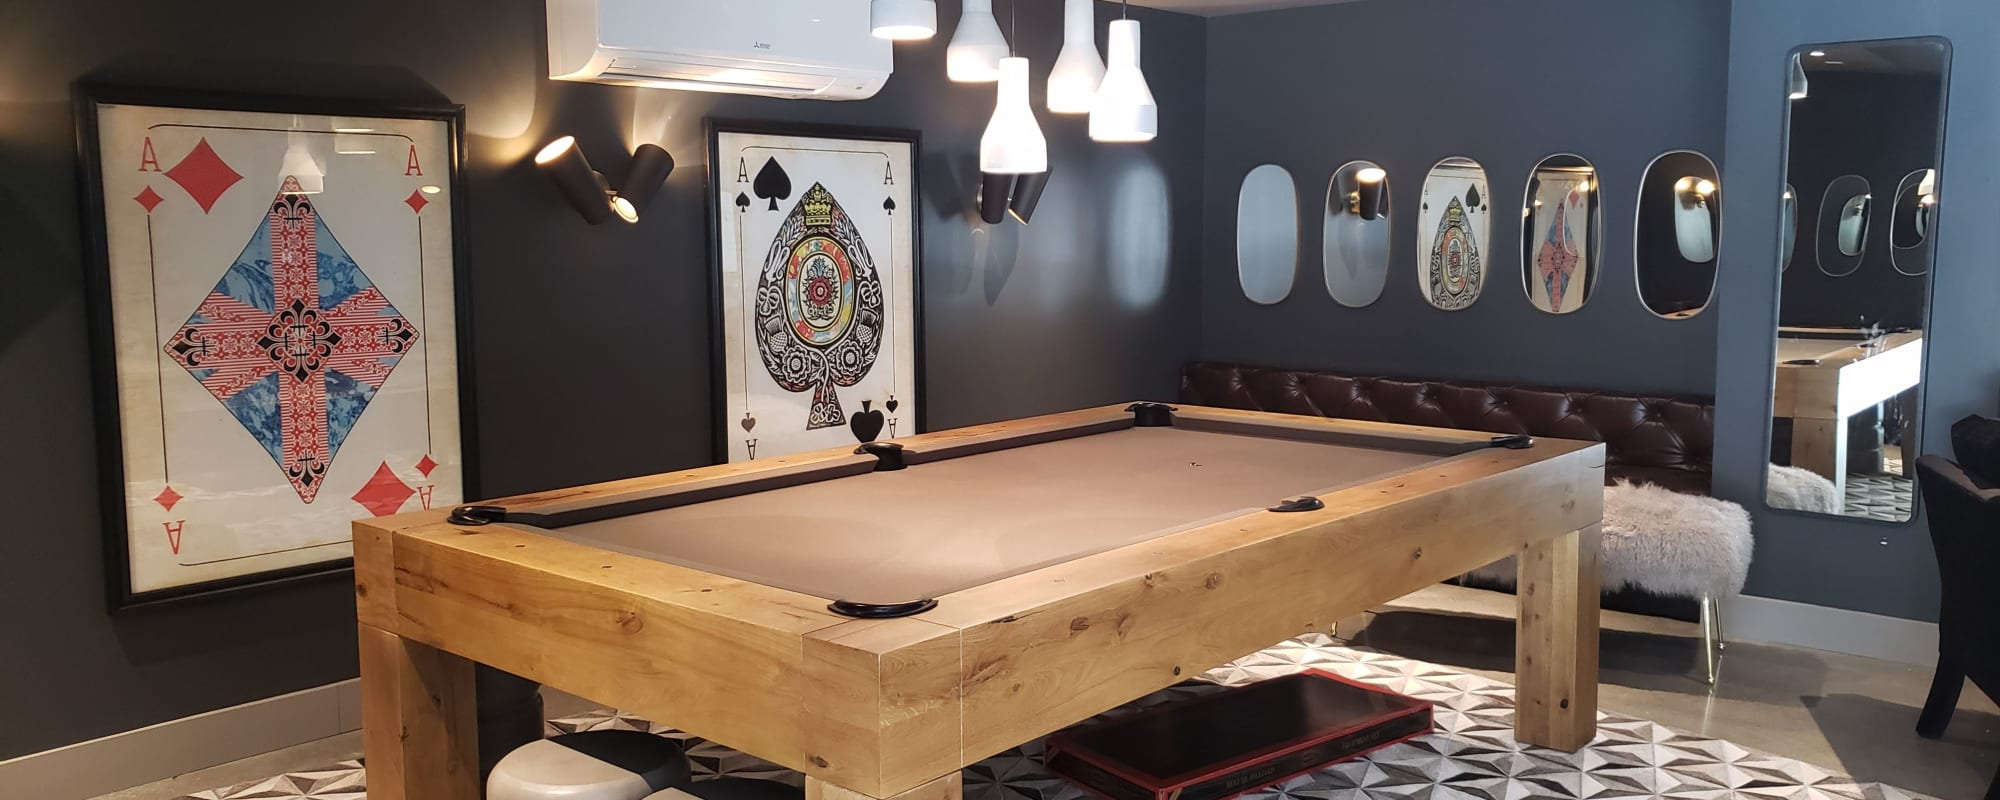 Billiards table for The Moran residence and guests